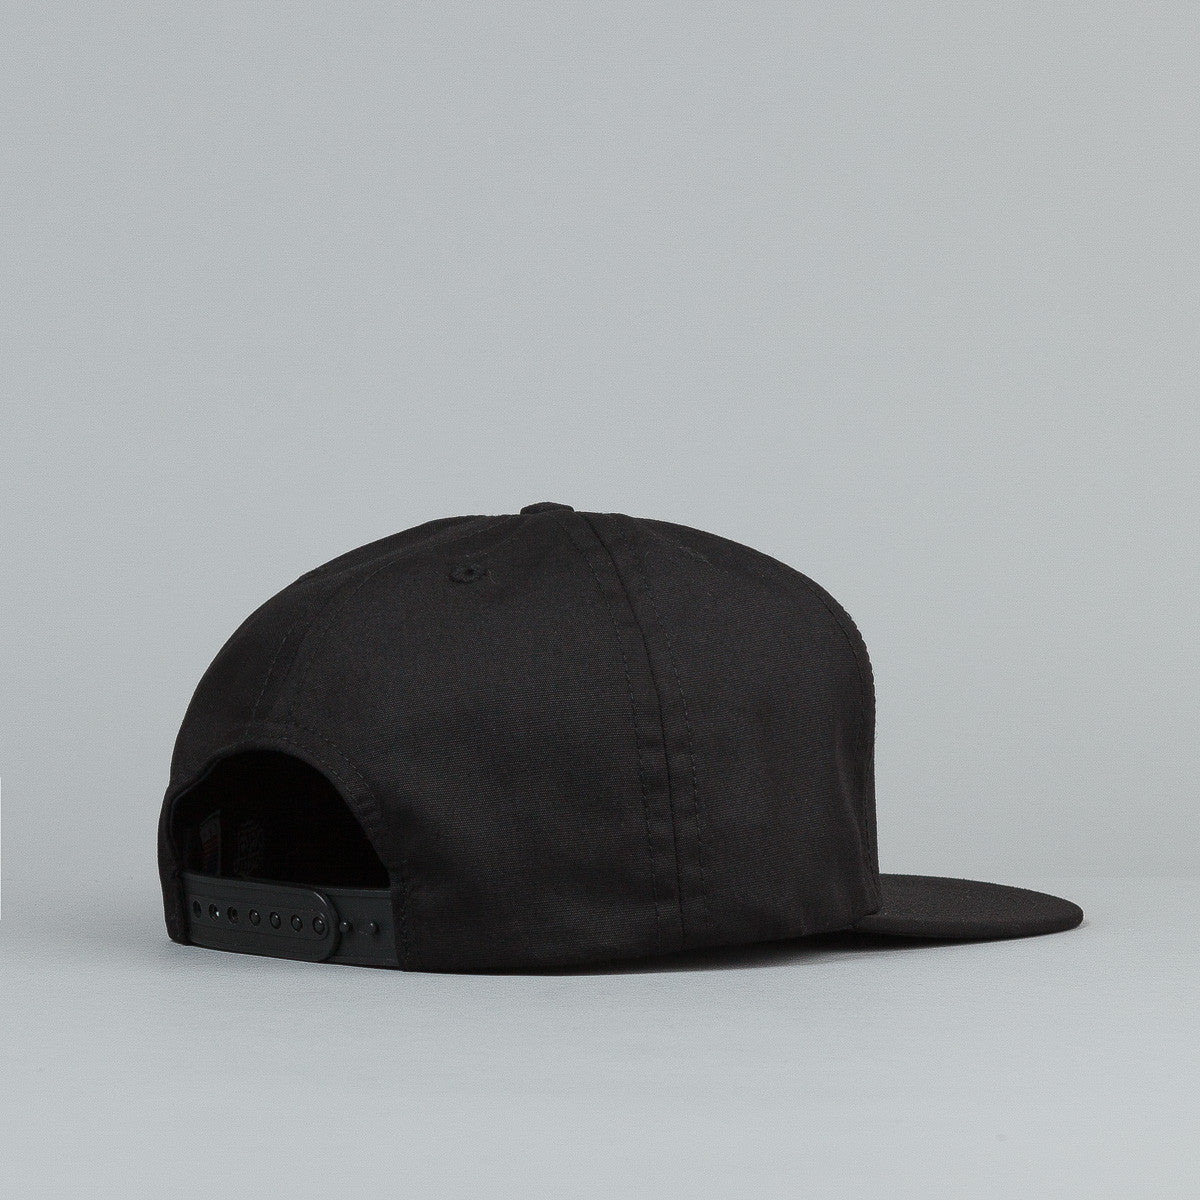 Belief City Block Snapback Cap - Black